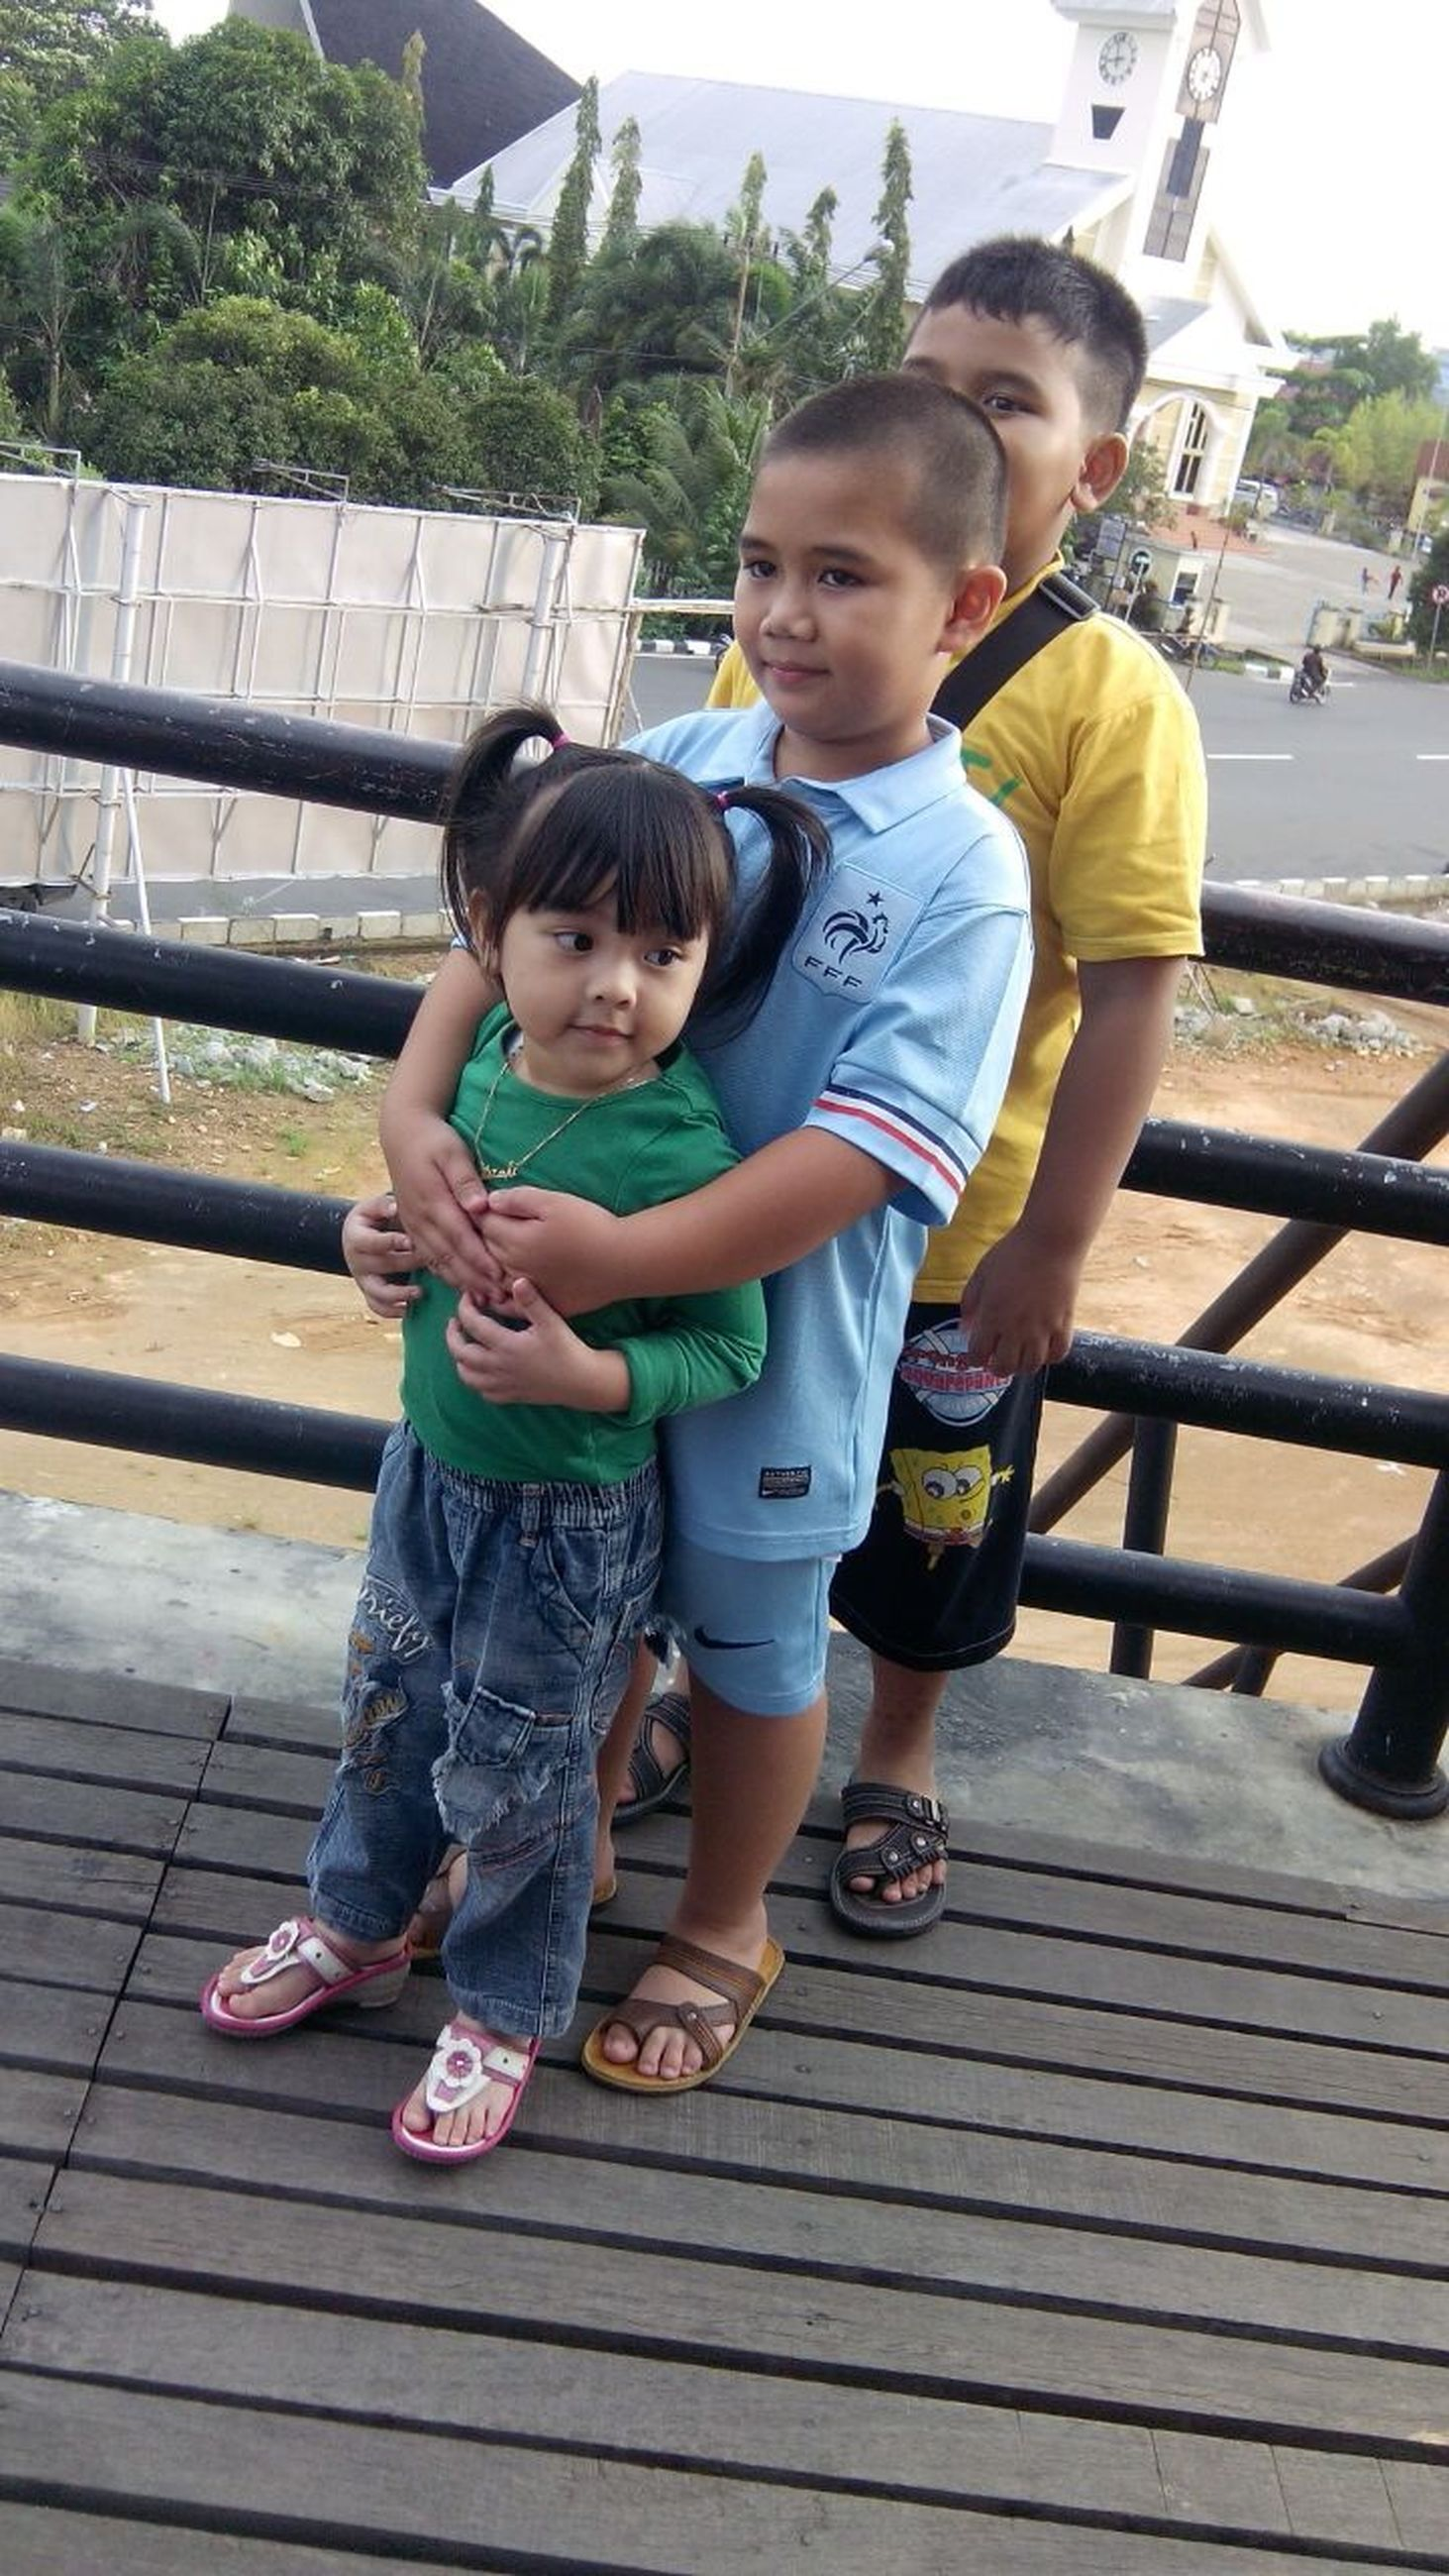 childhood, elementary age, person, boys, lifestyles, full length, togetherness, casual clothing, girls, leisure activity, bonding, cute, innocence, family, love, happiness, sibling, brother